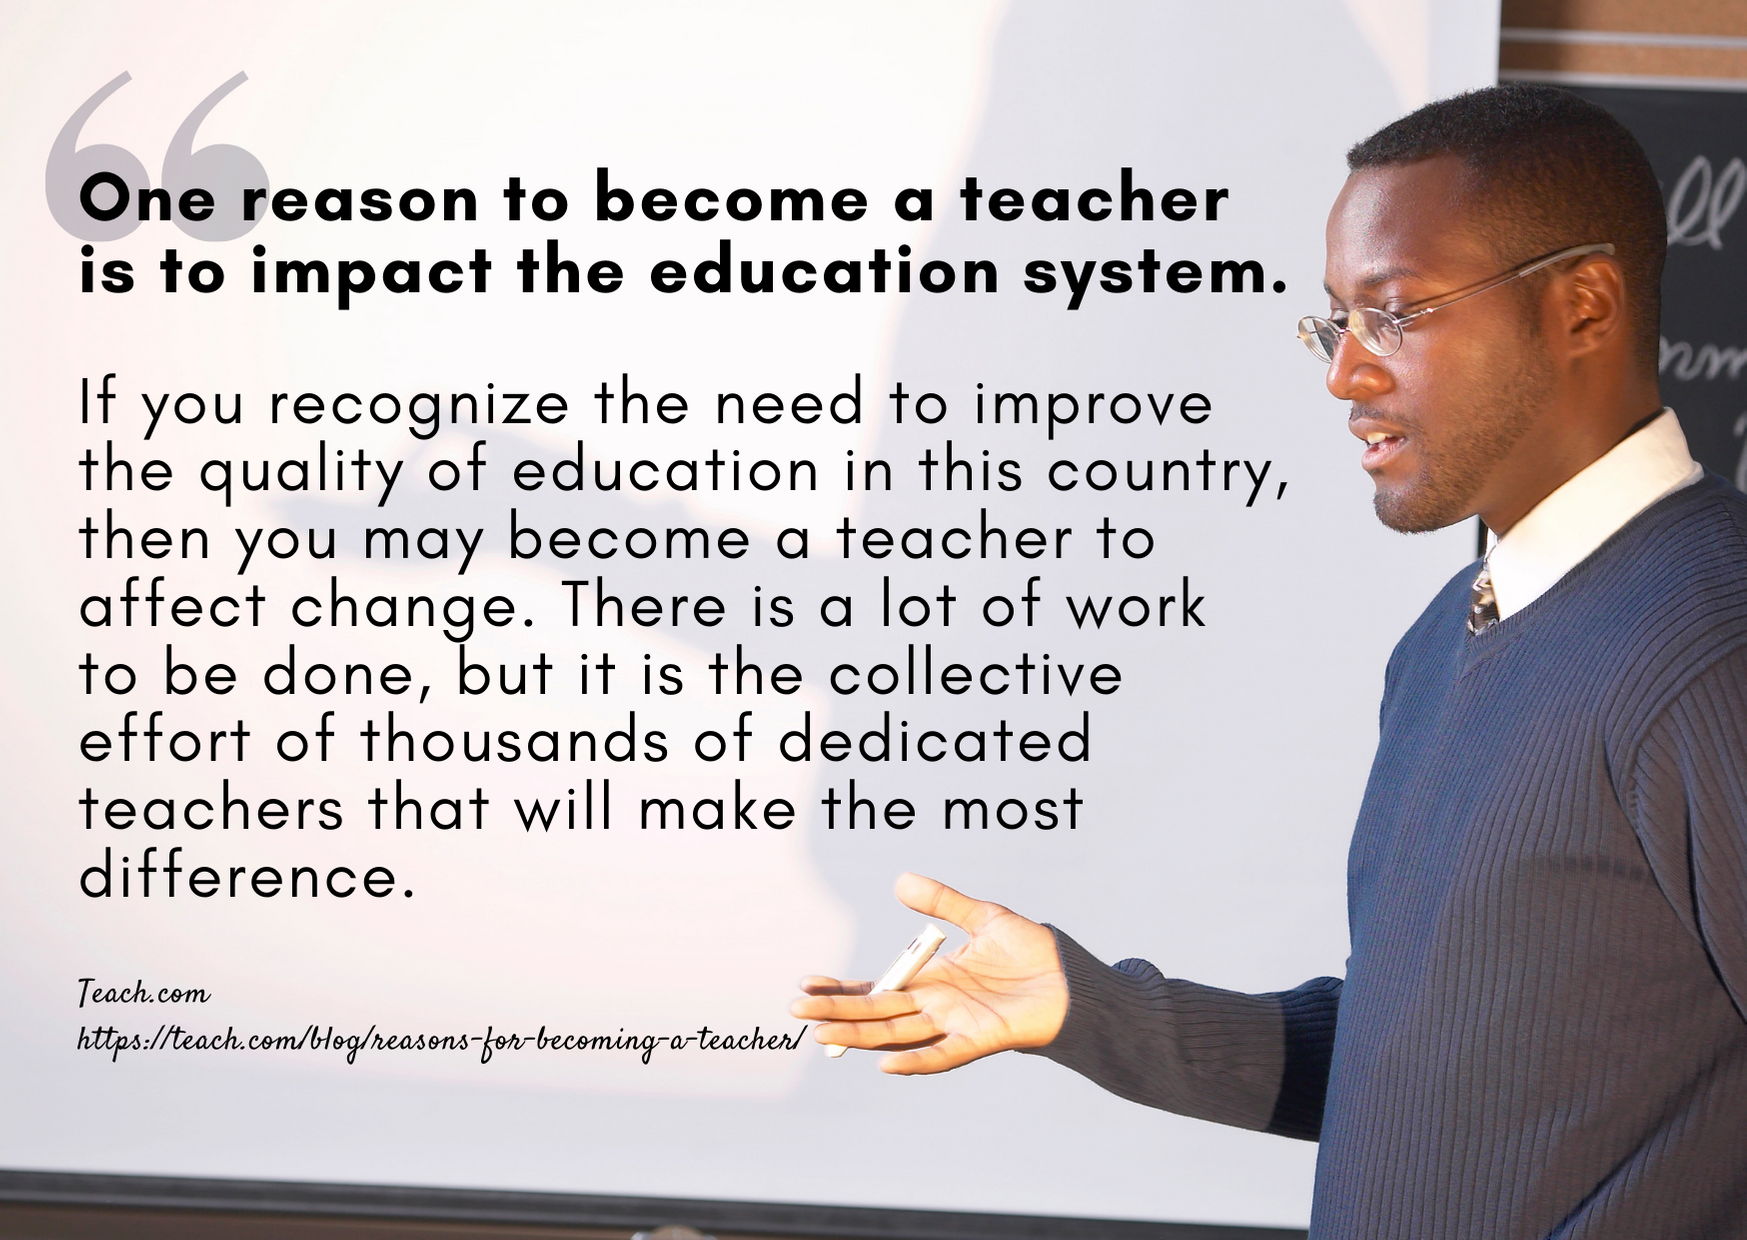 Education Career Guide - fact 5